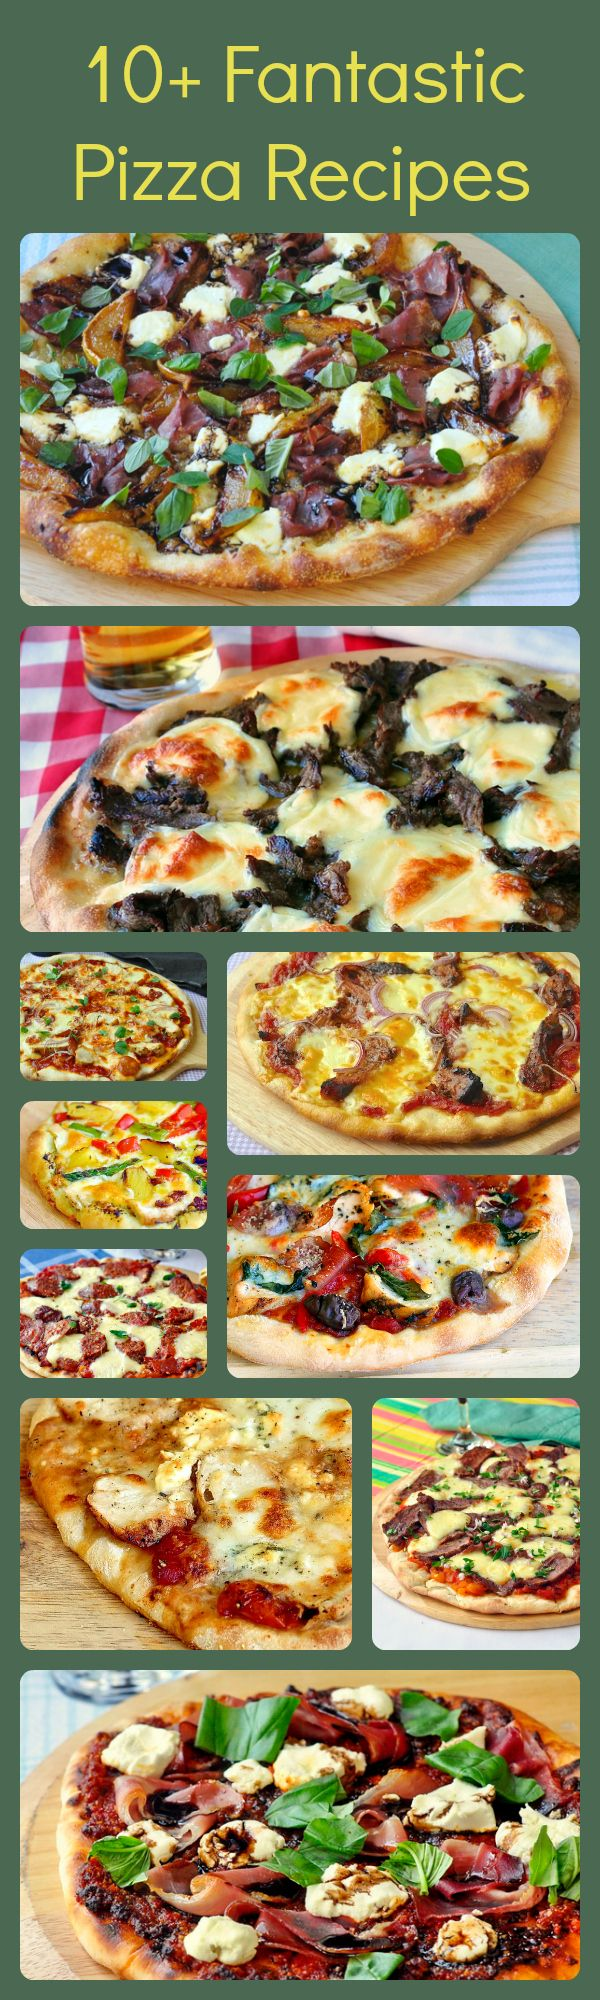 From Buffalo Wing, Philly Cheesesteak and BBQ Chicken to Pear Prosciutto or Pulled pork, we have some uniquely delicious pizza ideas and recipes for the perfect crust too.